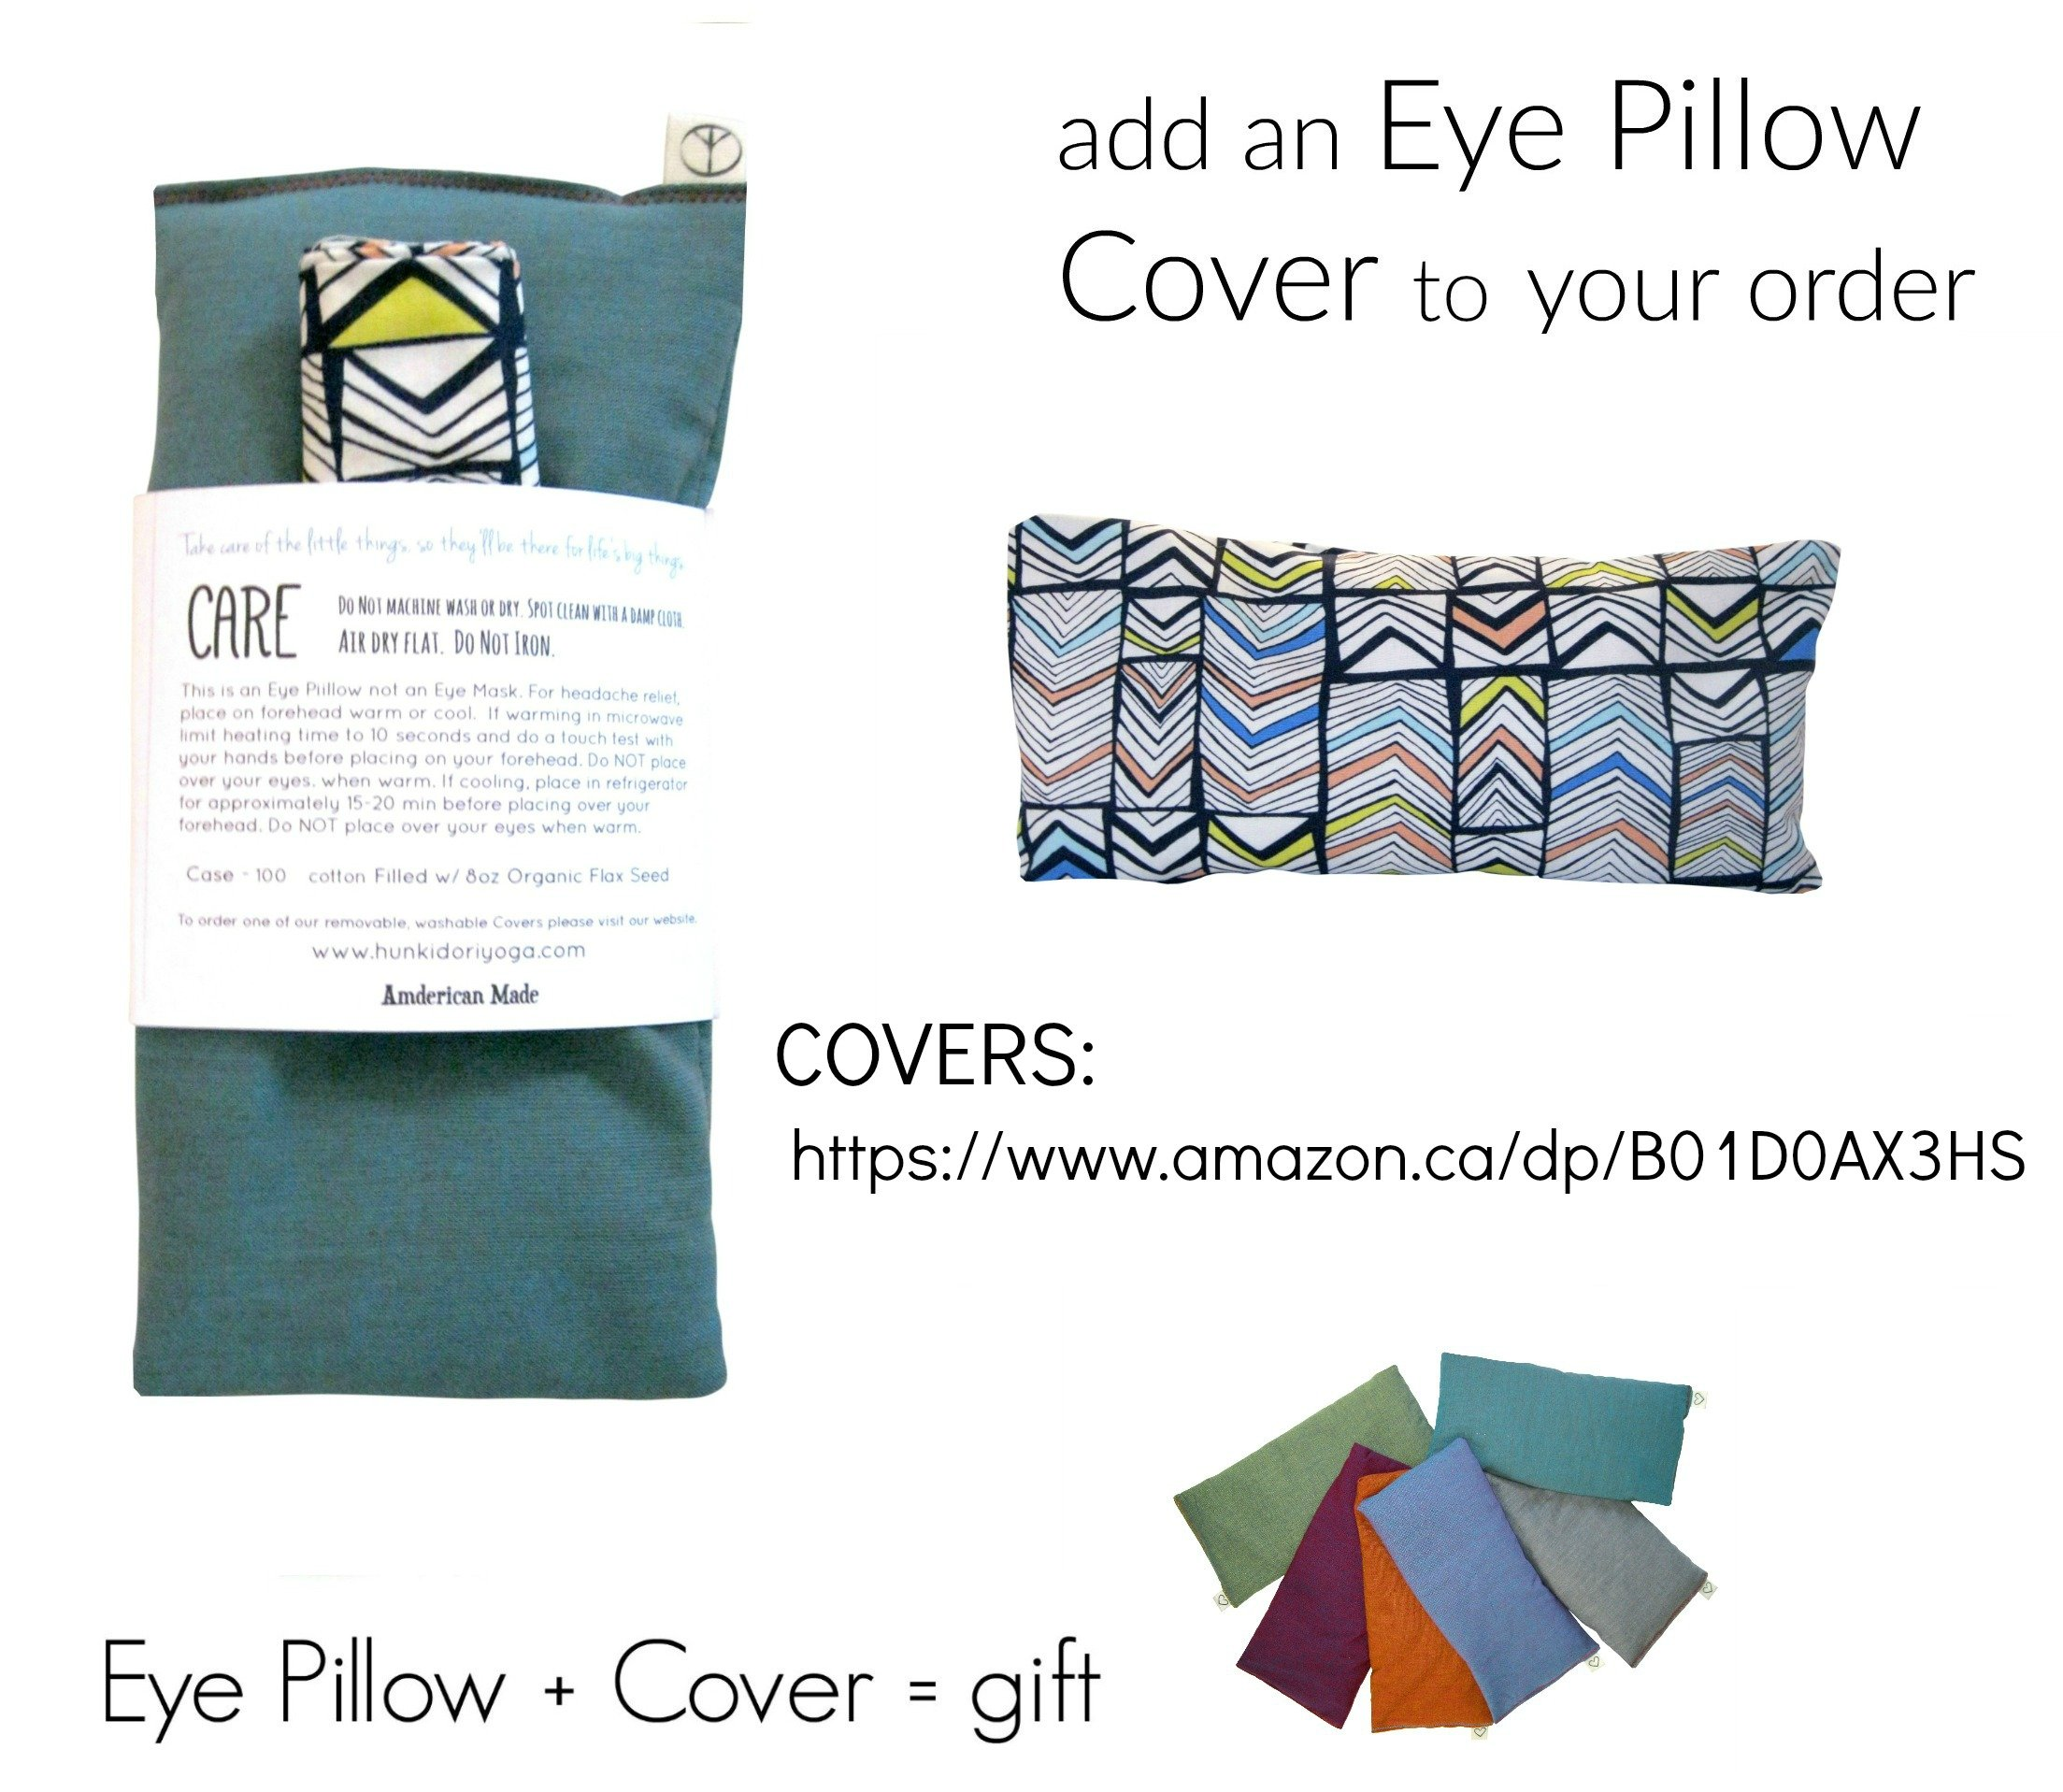 Scented Eye Pillows - Pack of (4) - Soft Cotton 4 x 8.5 - Organic Lavender Flax Seed - hand block print India - pink purple gray teal green elephant by Peacegoods (Image #8)